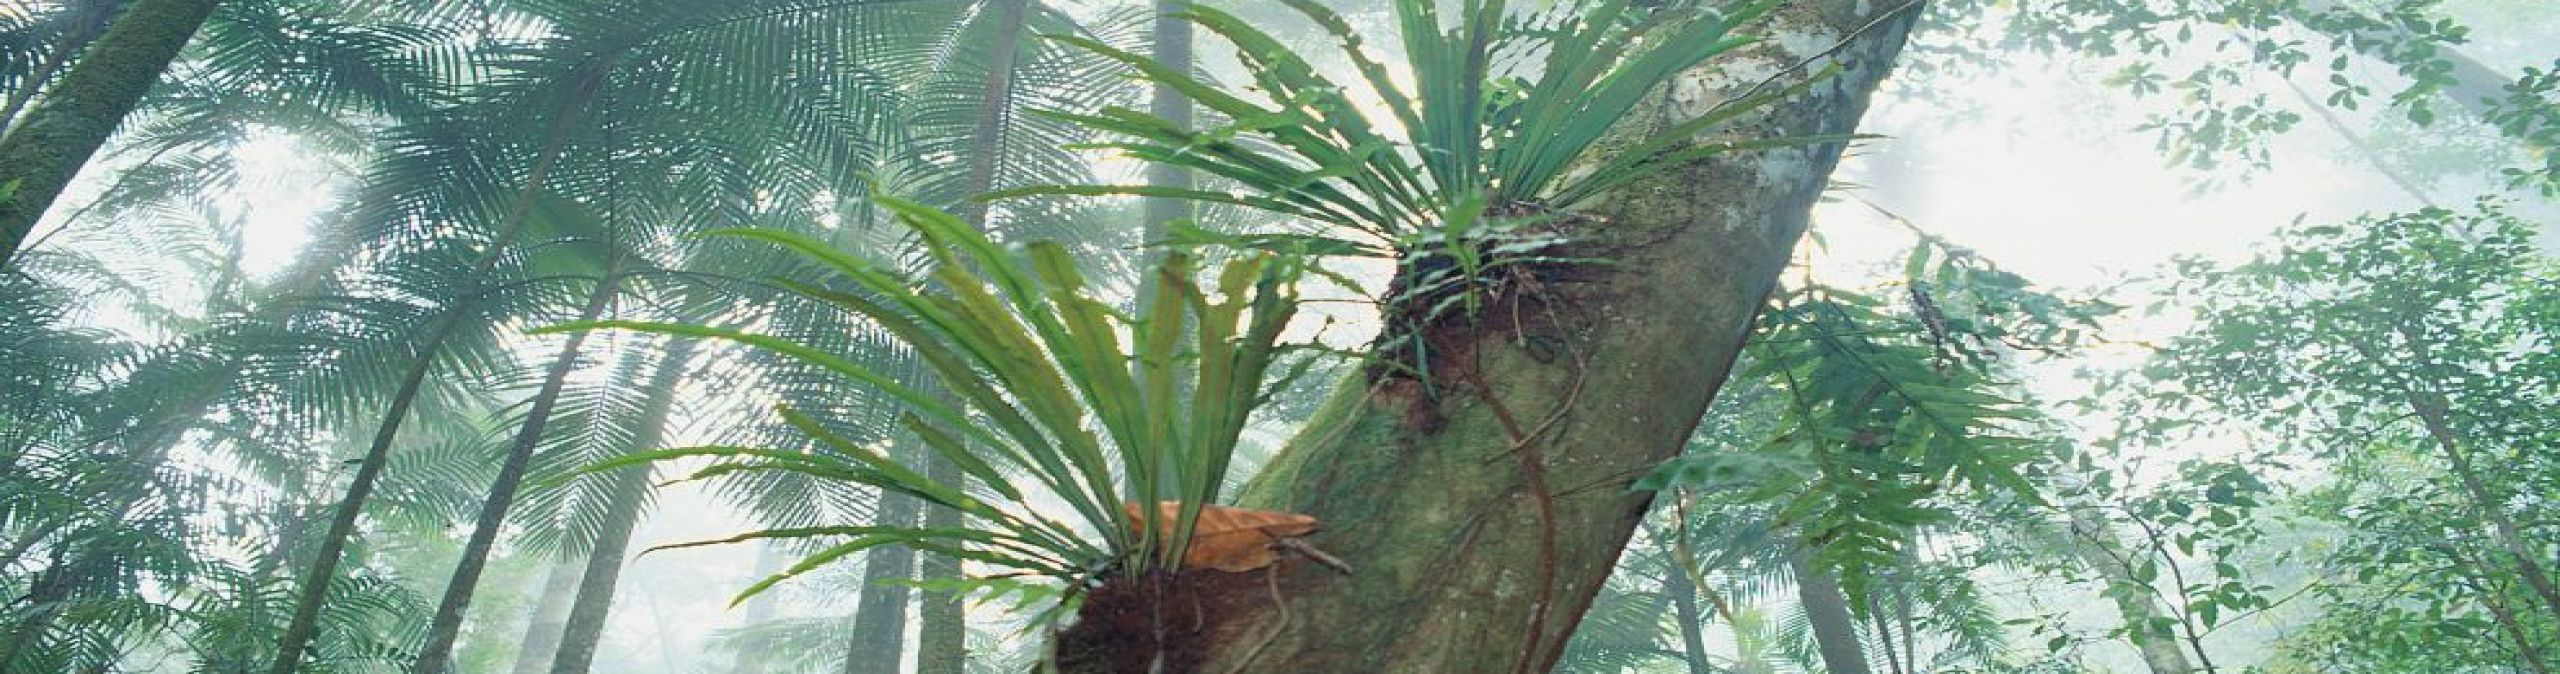 Tropical Rainforest Plants List Information Pictures amp Facts